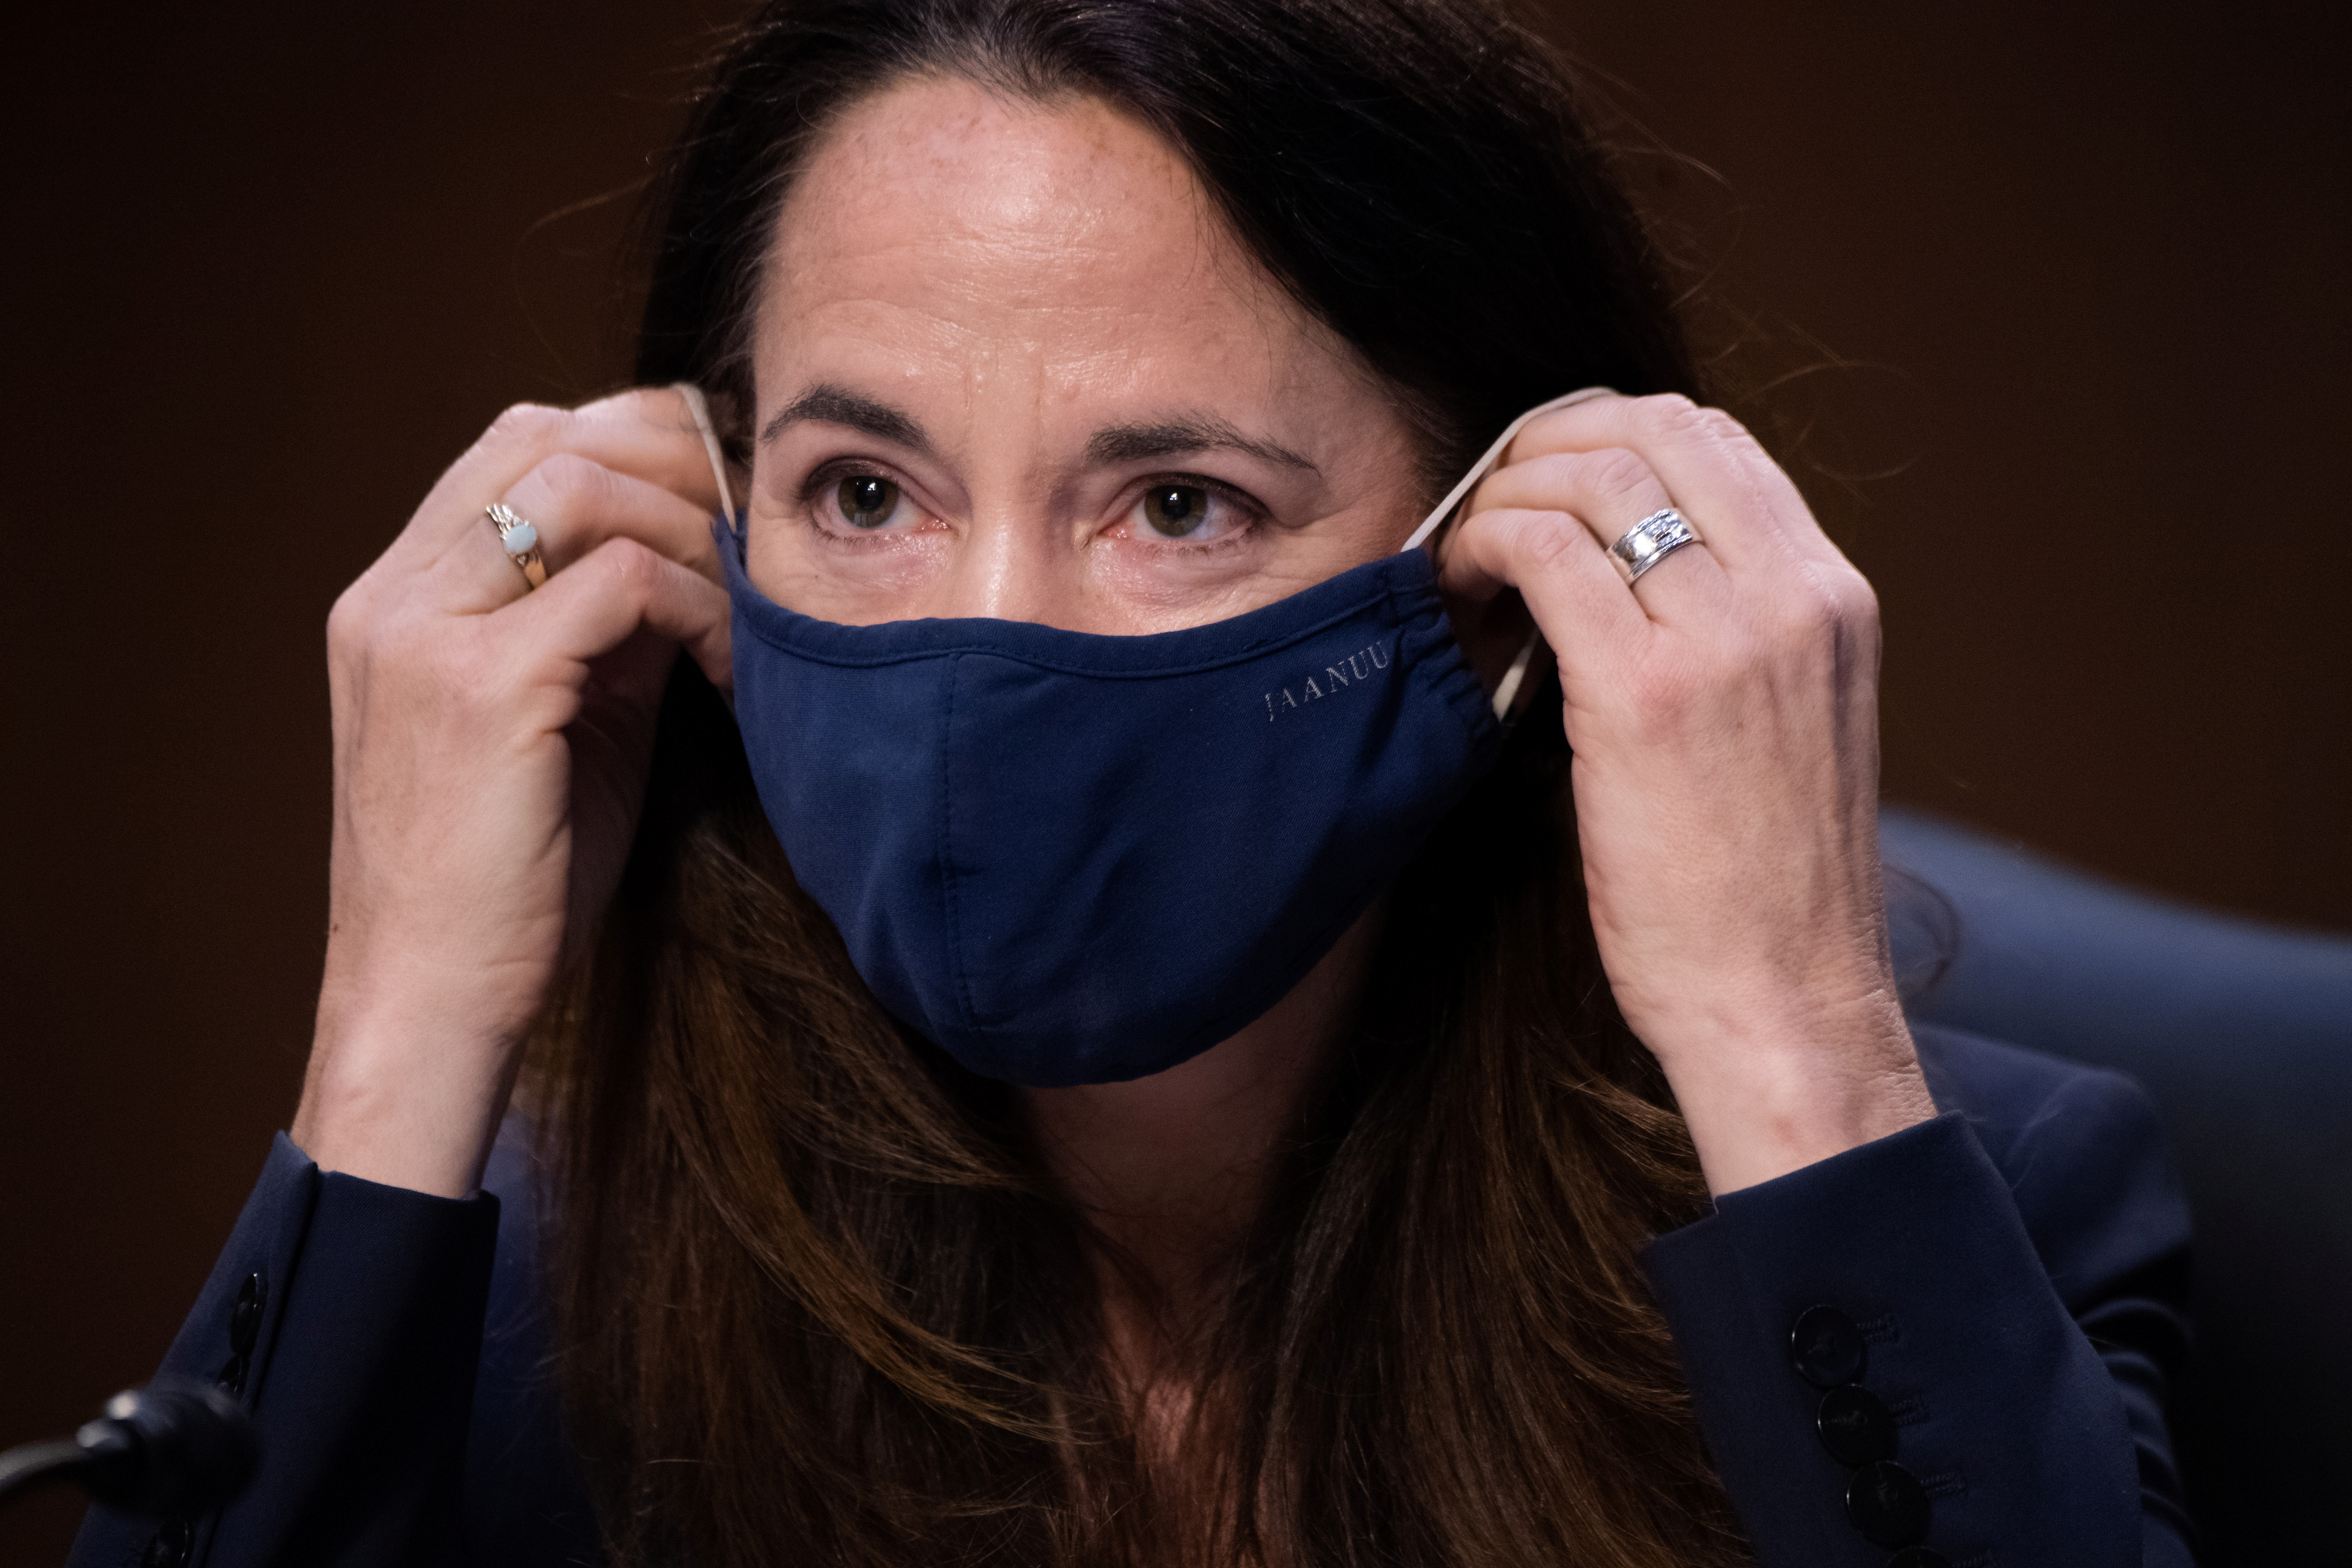 Director Avril Haines of the Office of the Director of National Intelligence (ODNI) adjusts her mask as she testifies during a Senate Select Committee on Intelligence hearing about worldwide threats, on Capitol Hill in Washington, DC, U.S., April 14, 2021. Saul Loeb/Pool via REUTERS